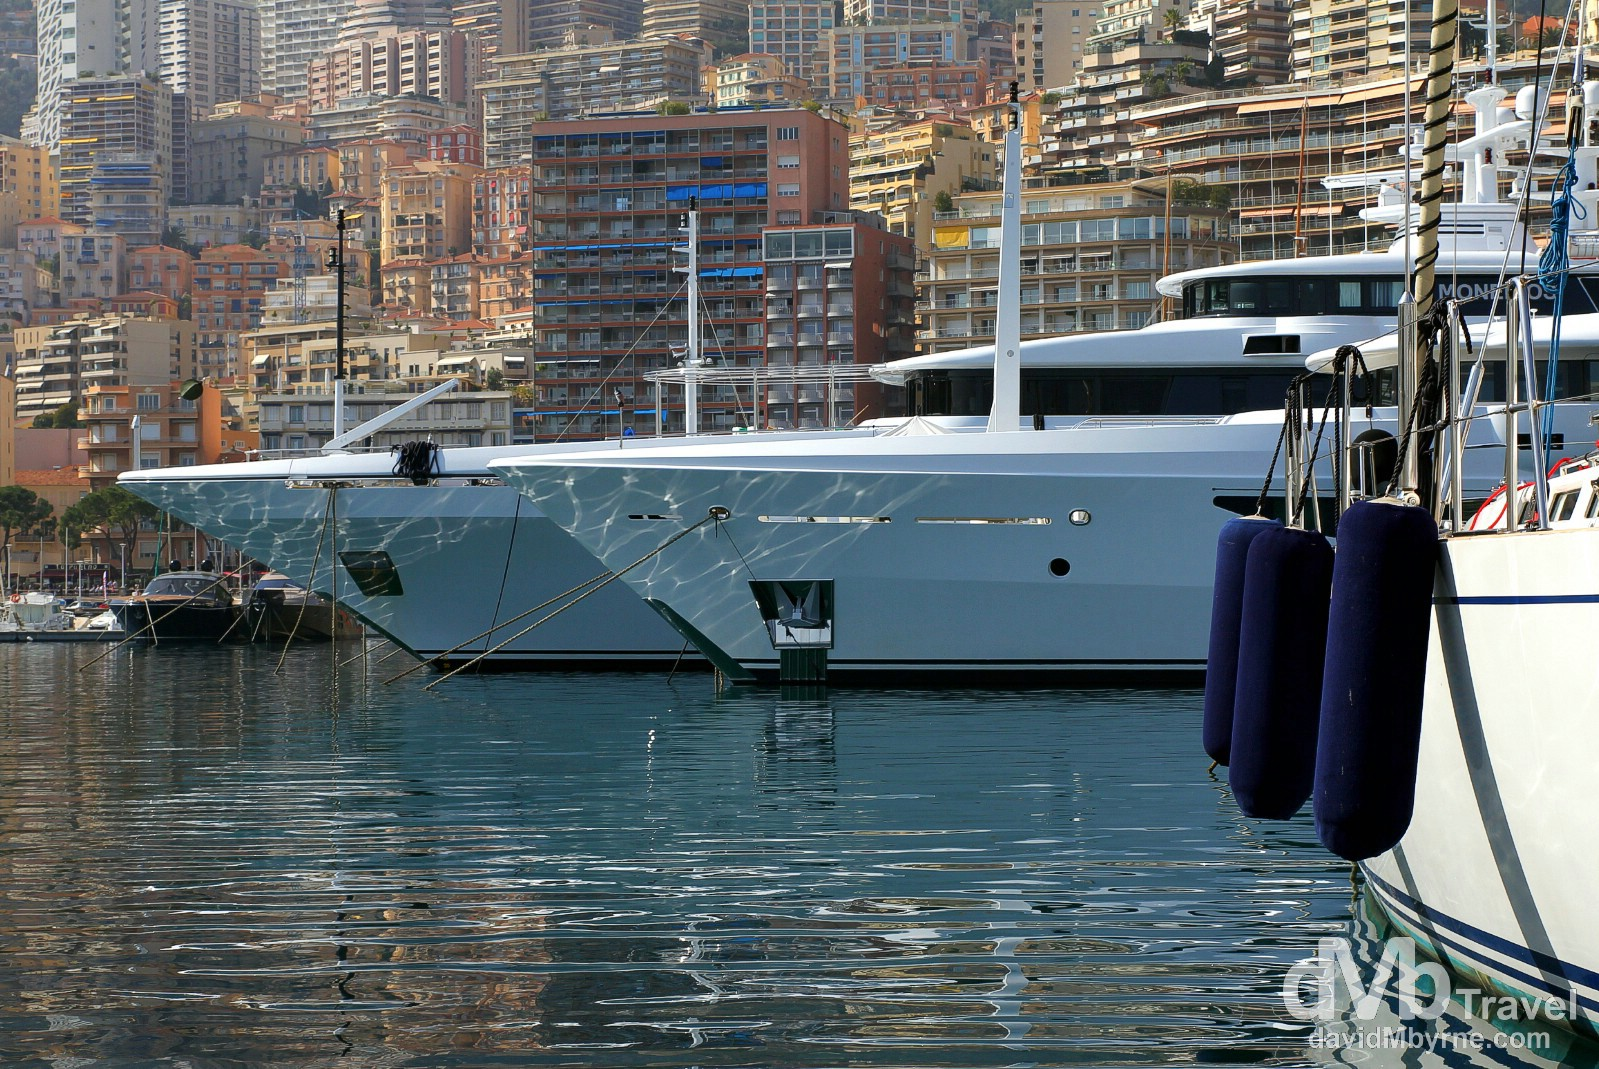 Yachts & pleasure craft in Port de Monaco, Monaco. March 14th, 2014.